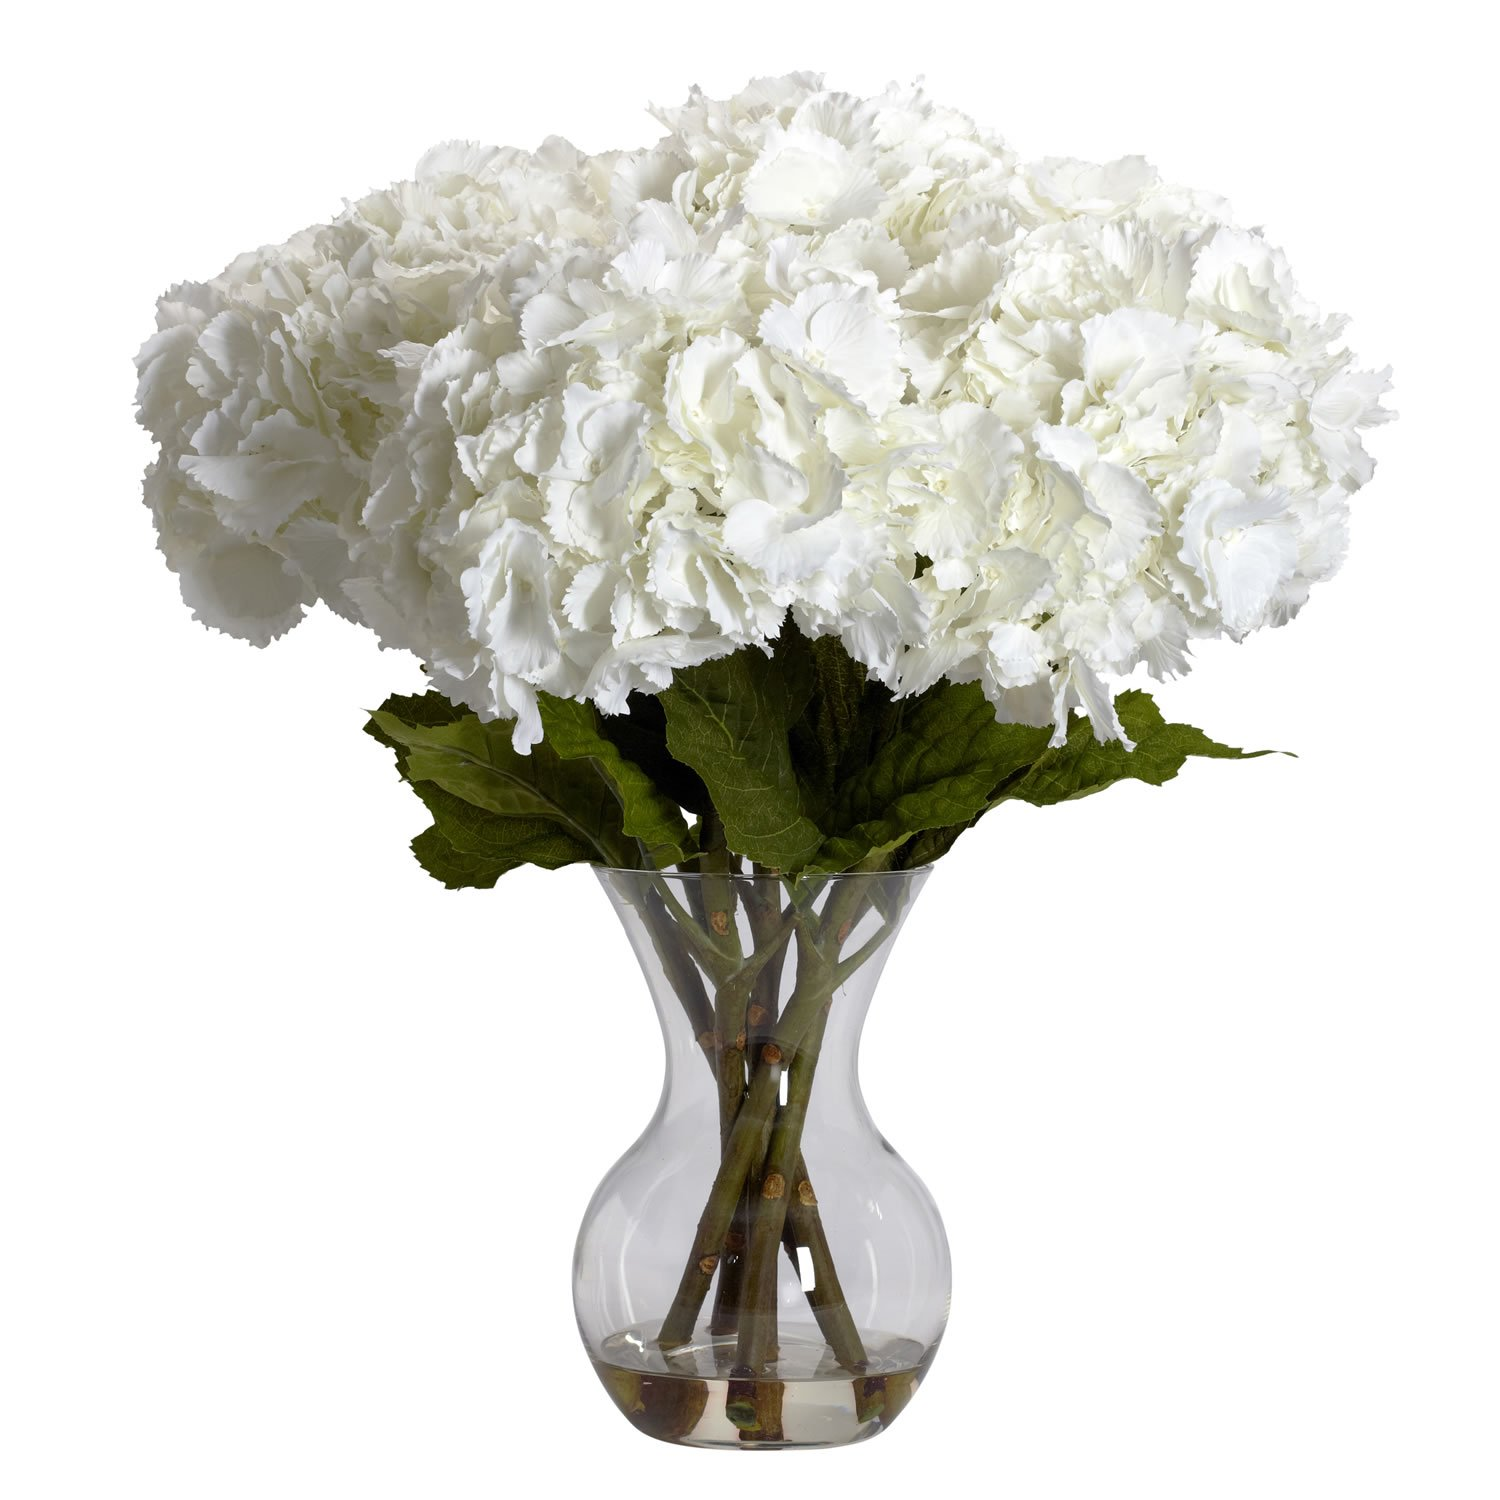 Amazon nearly natural 1260 large hydrangea with vase silk amazon nearly natural 1260 large hydrangea with vase silk flower arrangement white home kitchen reviewsmspy